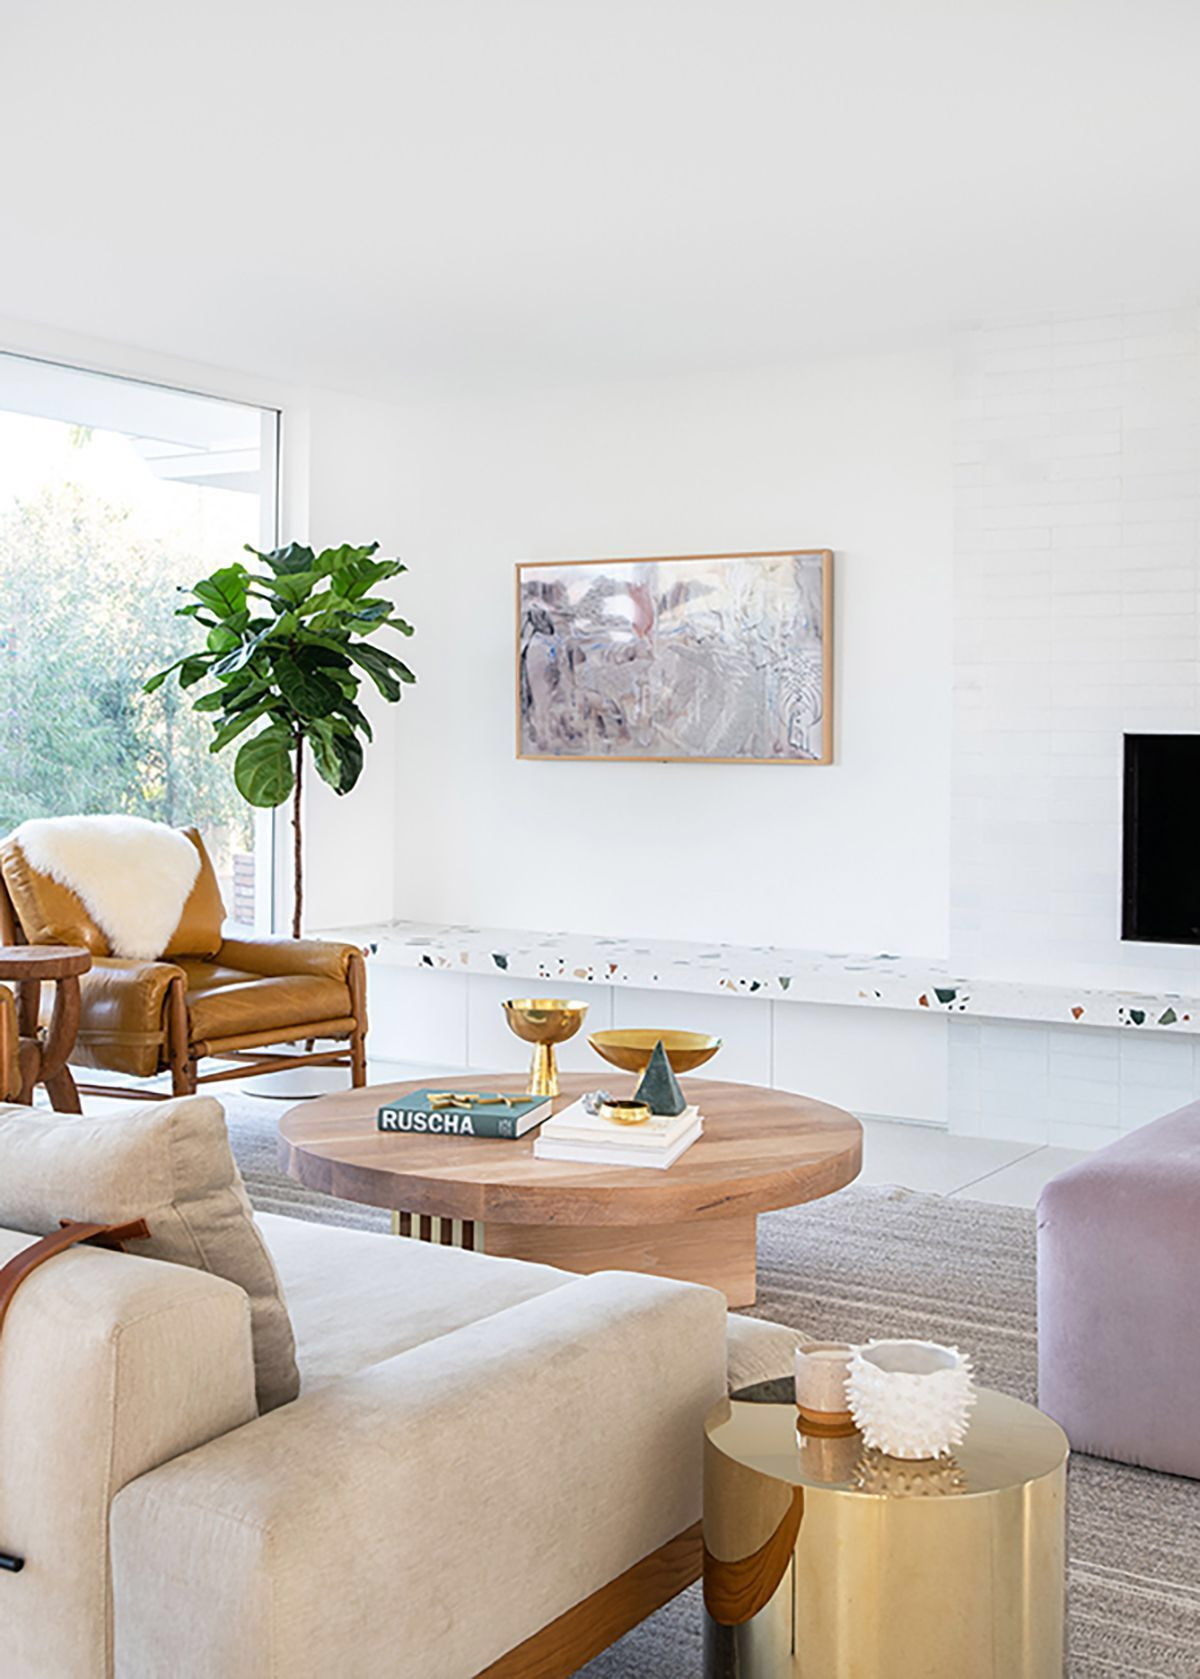 Advice From An Architect 10 Tips To Create A Cooler Home: Living Room Trends By Annie Claire Hudson On //DreamHome